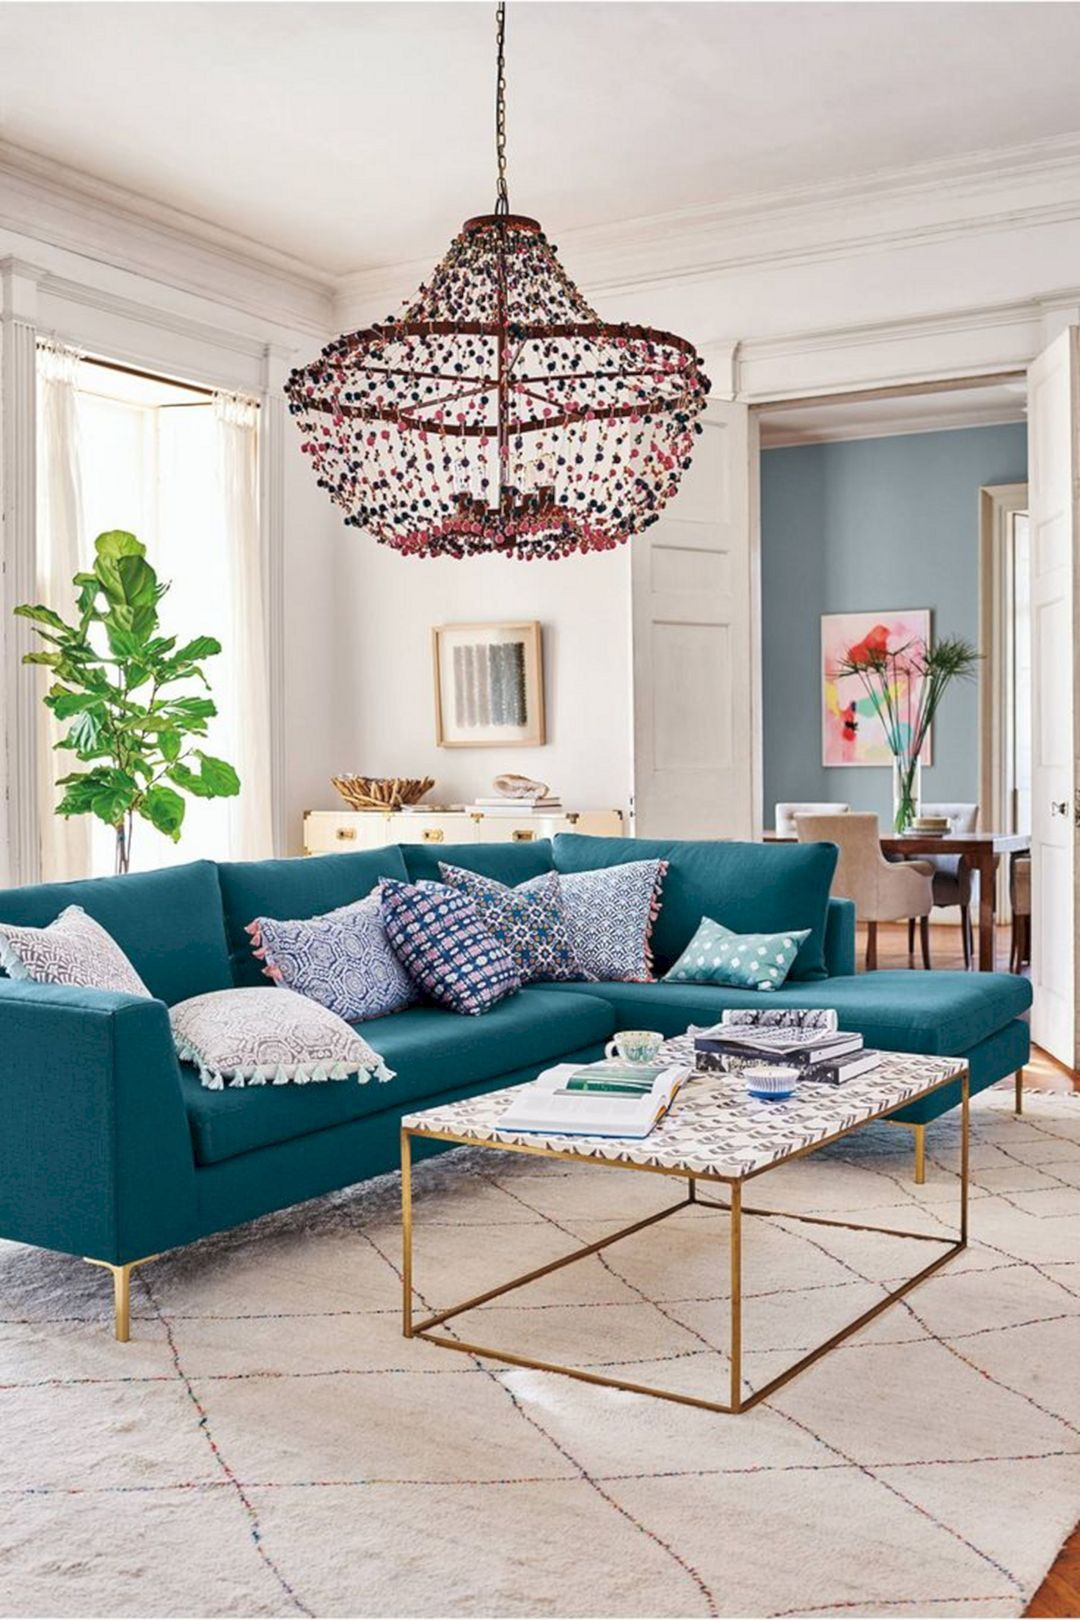 Update The Living Room With Awesome Peacock Color Ideas Livingroom Livingroomdesign Peaco Teal Sofa Living Room Teal Living Rooms Living Room Turquoise